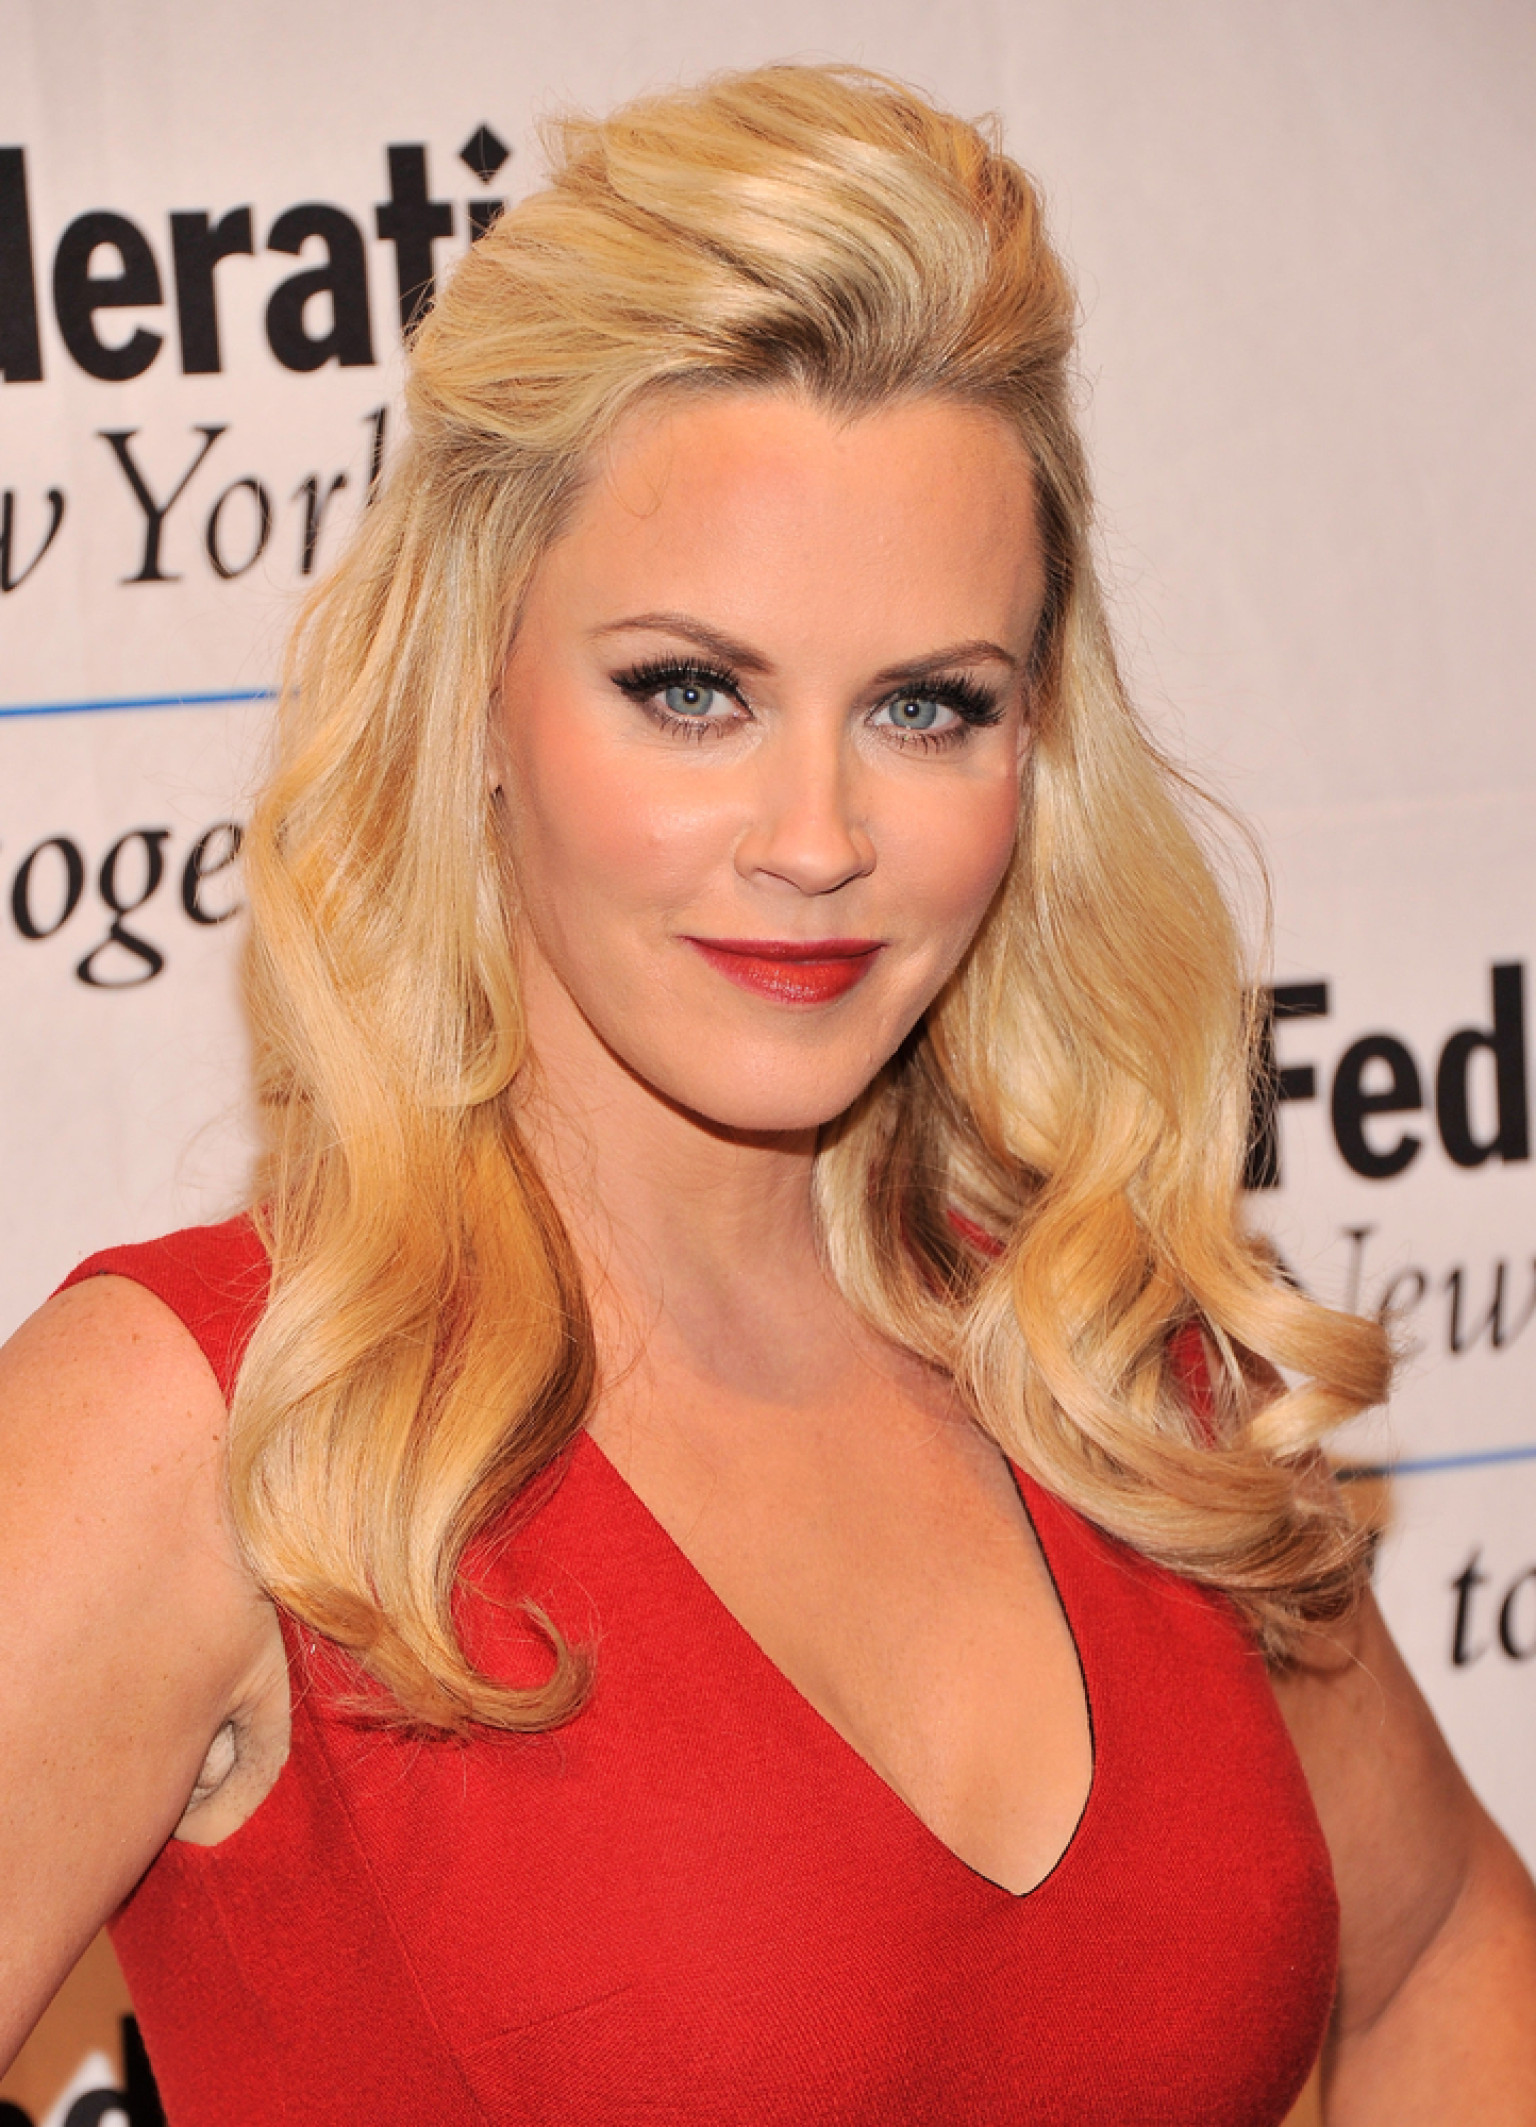 Jenny McCarthy Nude Pics and Videos - - Top